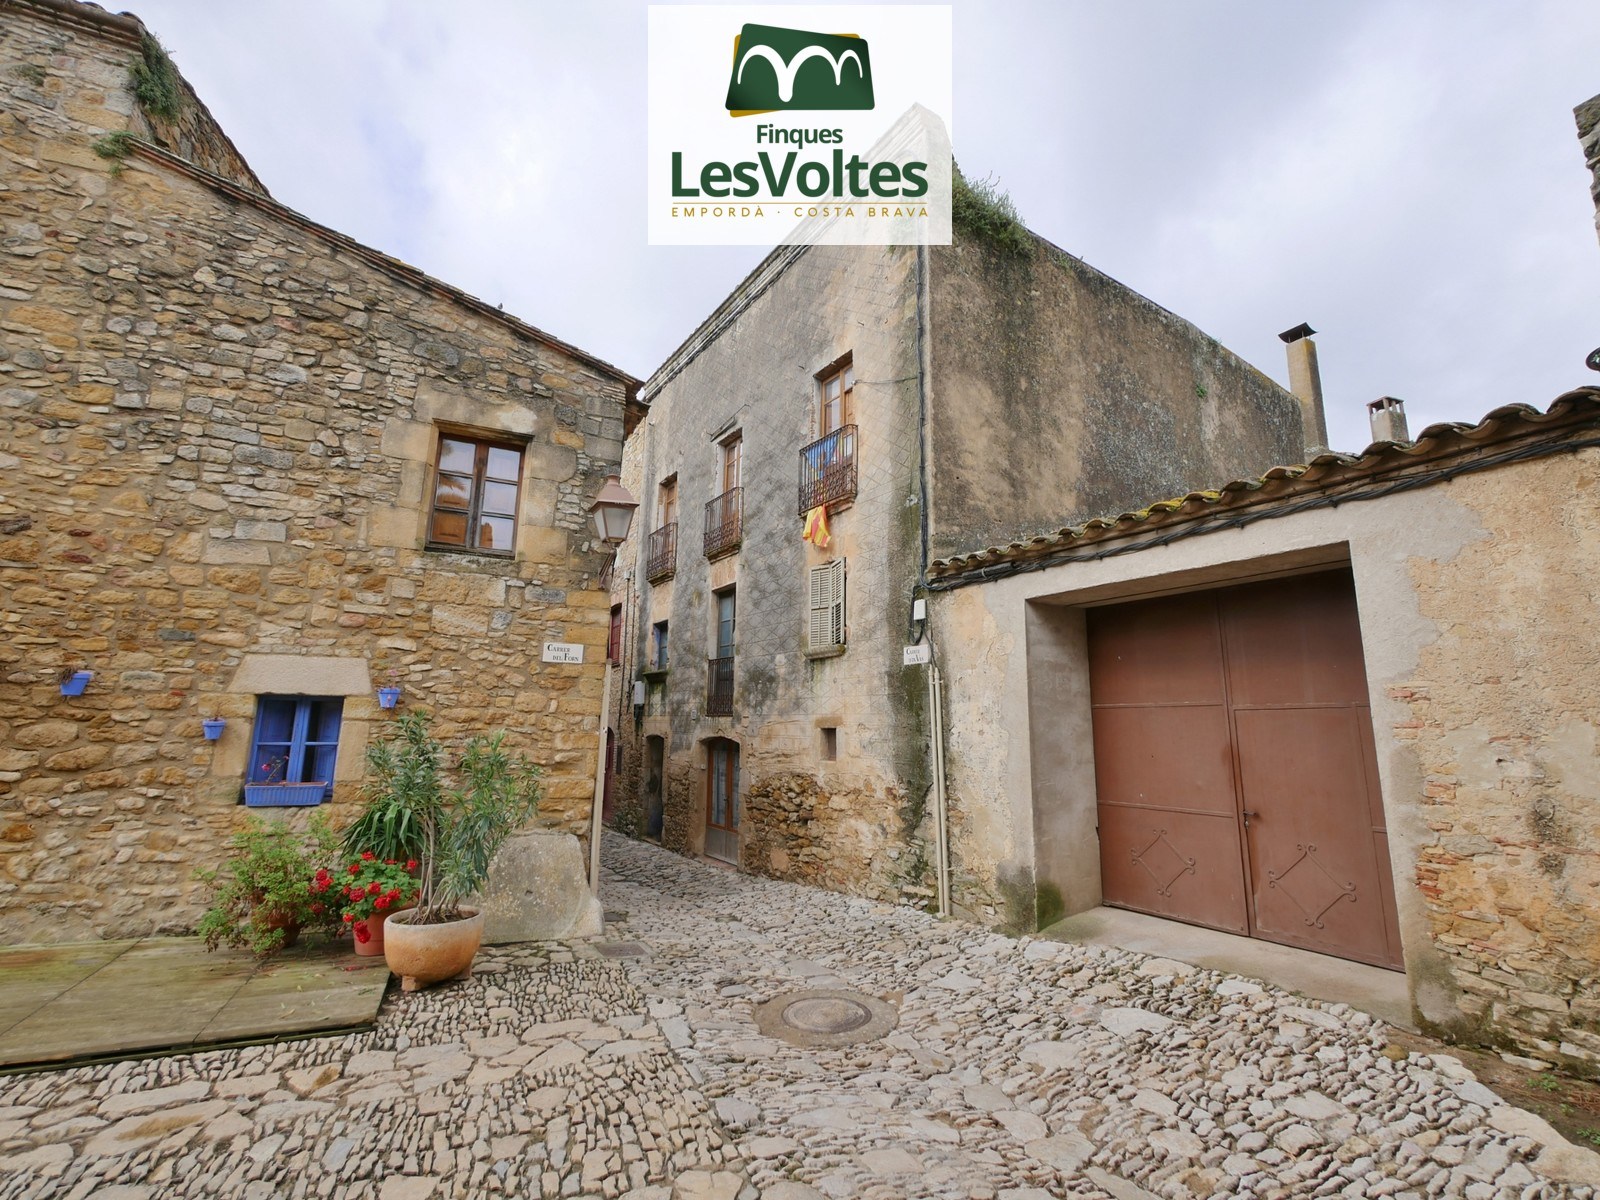 SEMI RENOVATED APARTMENT OF 150 M2 IN OLD HOUSE, WITH 3 BEDROOMS, TERRACE AND YARD FOR SALE IN PERATALLADA.